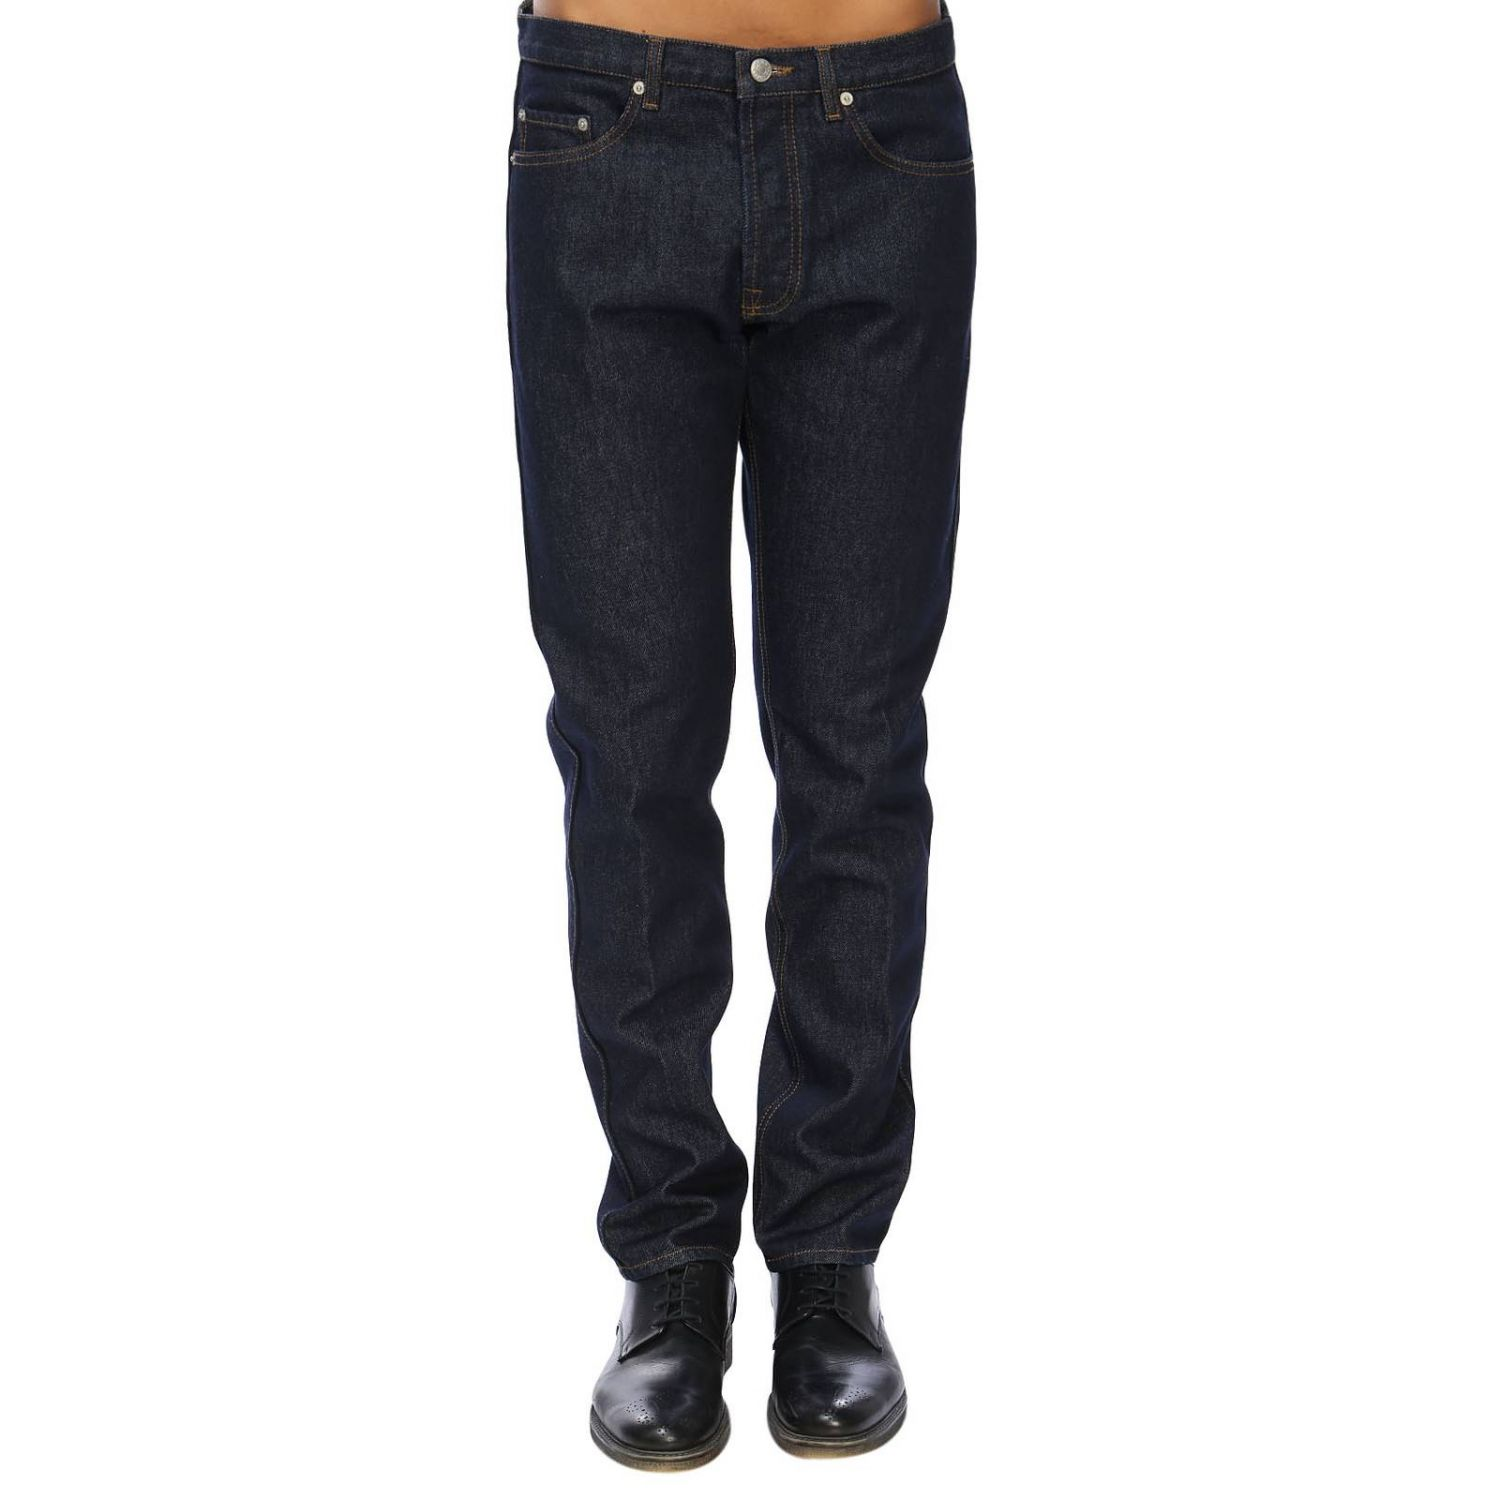 Jeans Jeans Men Dries Van Noten 8495445